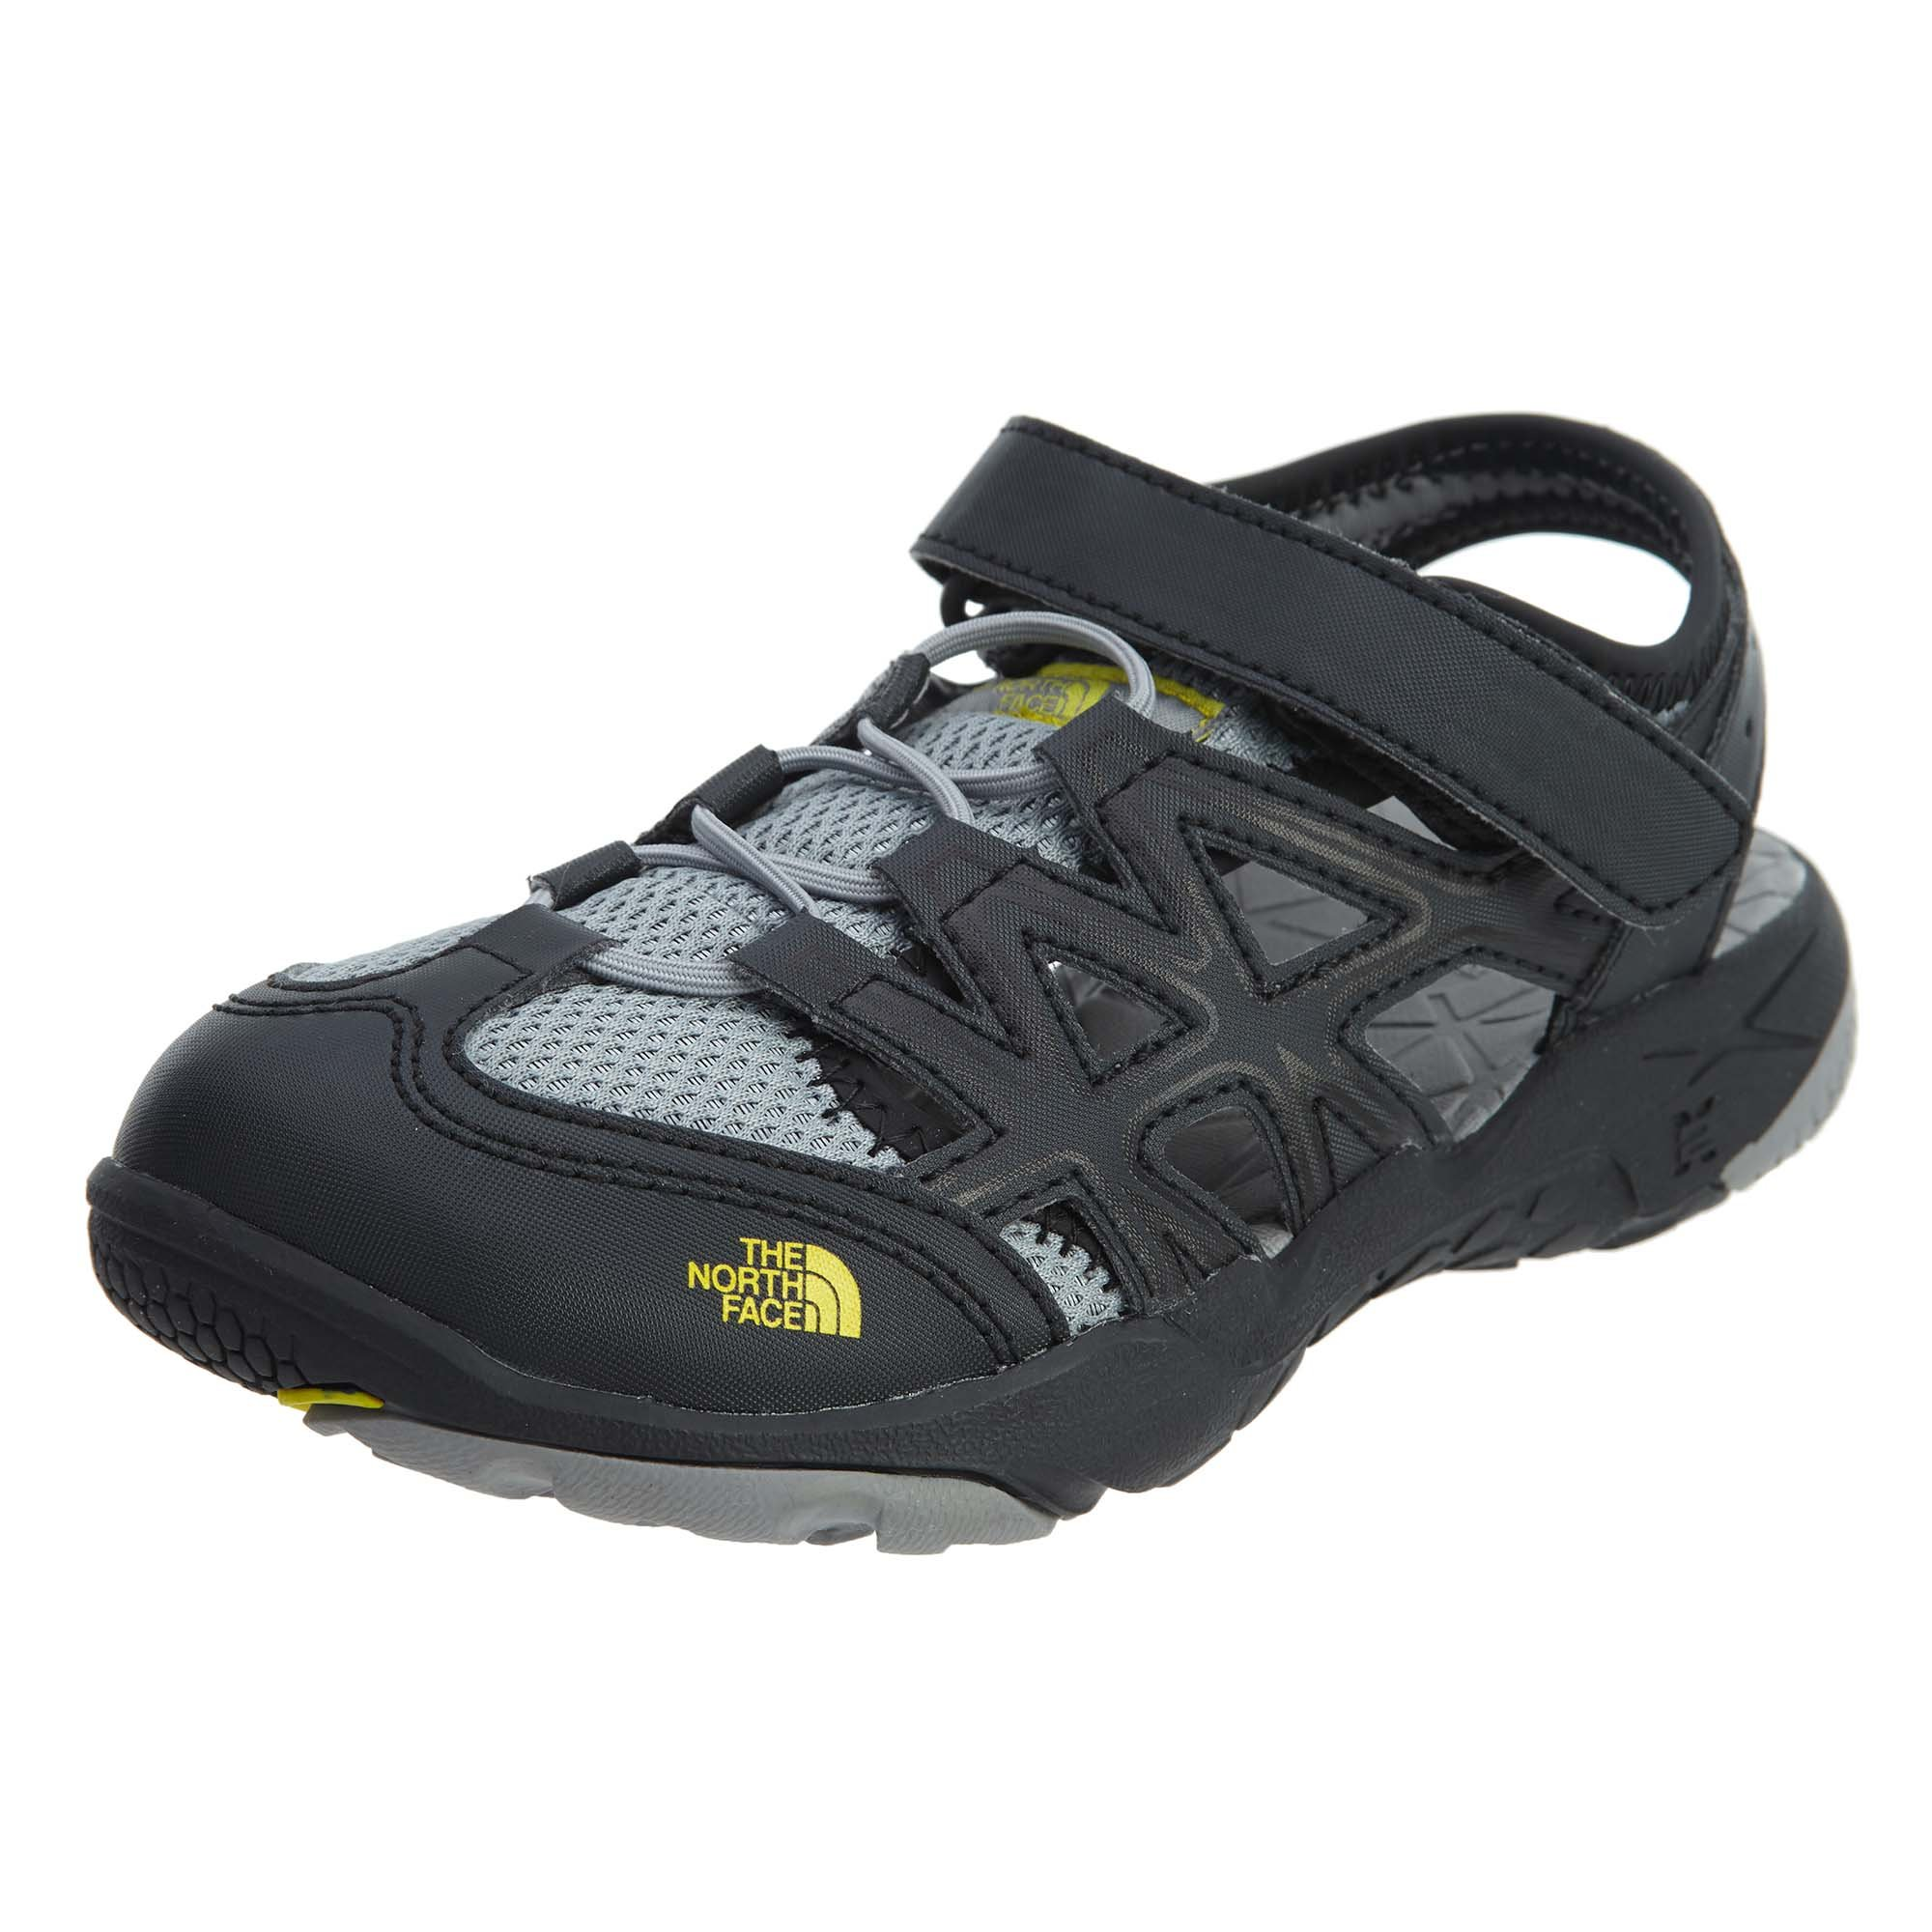 97a12902d The North Face Youth Hedgehog Sandal Phantom Grey/Griffin Grey Size 2 M US